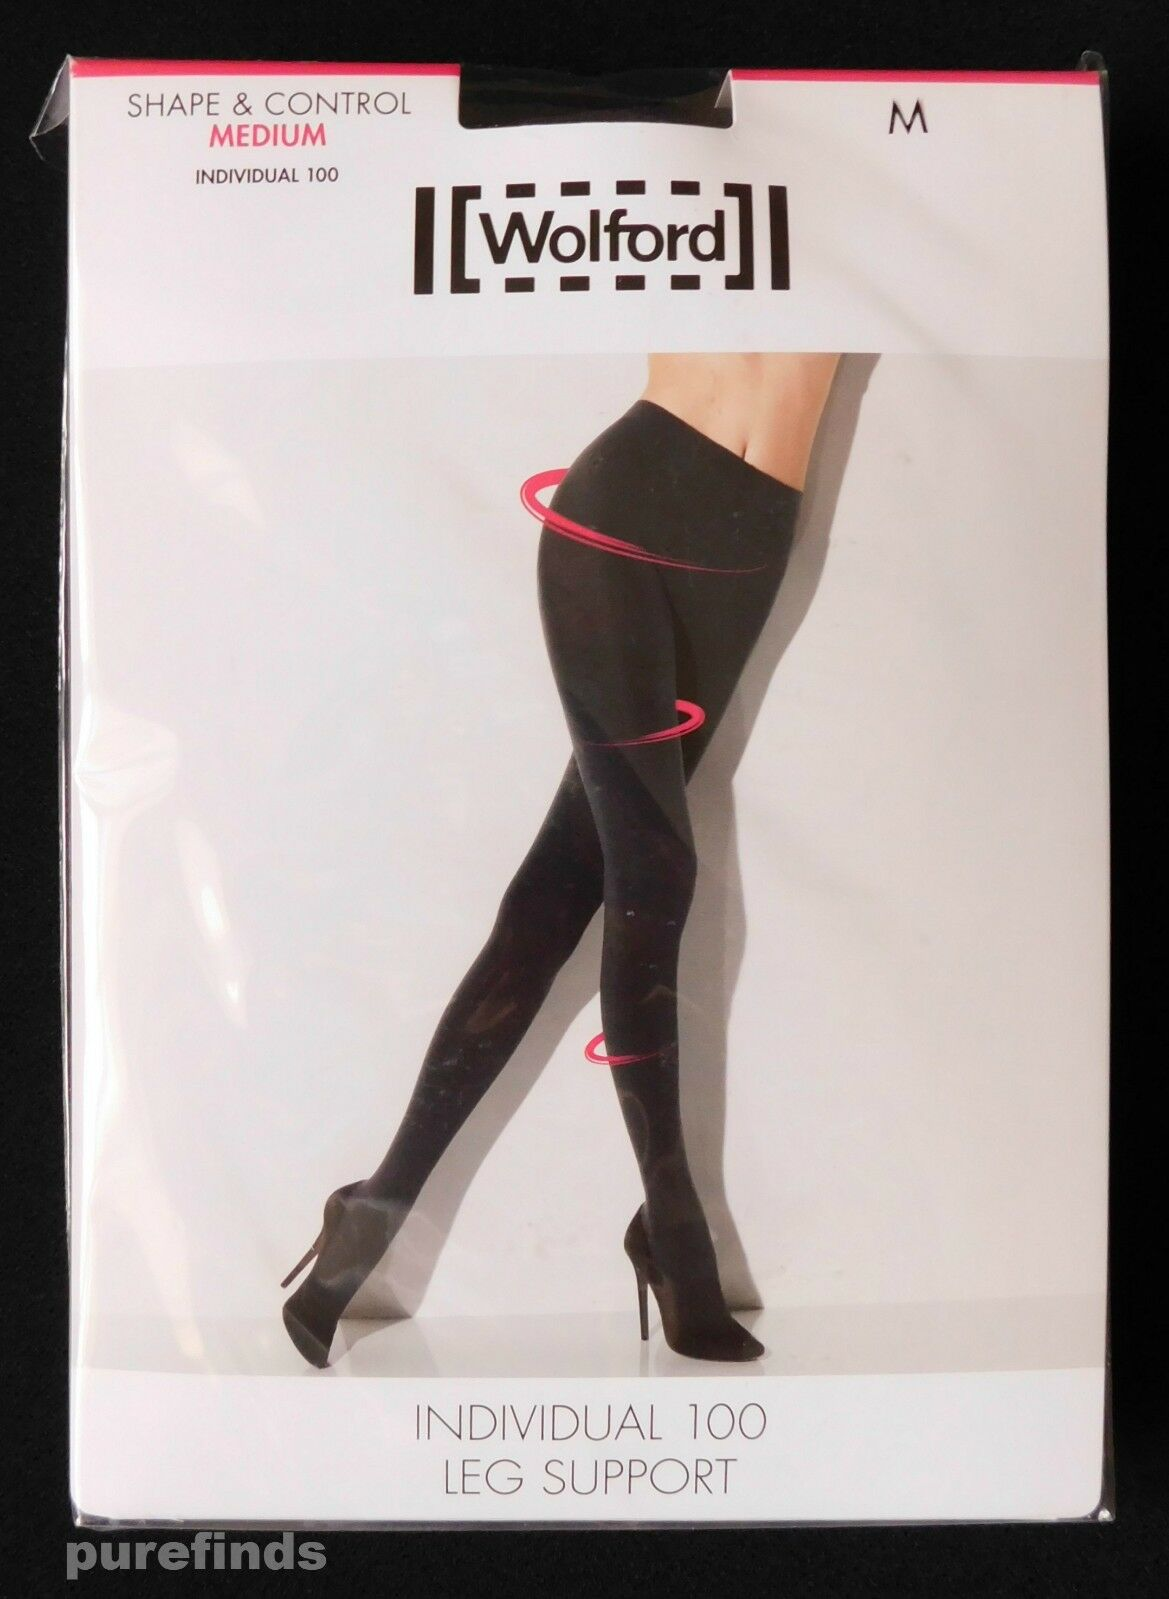 Wolford Individual 100 leg support tights, Medium, Raven, Shape & Control Medium